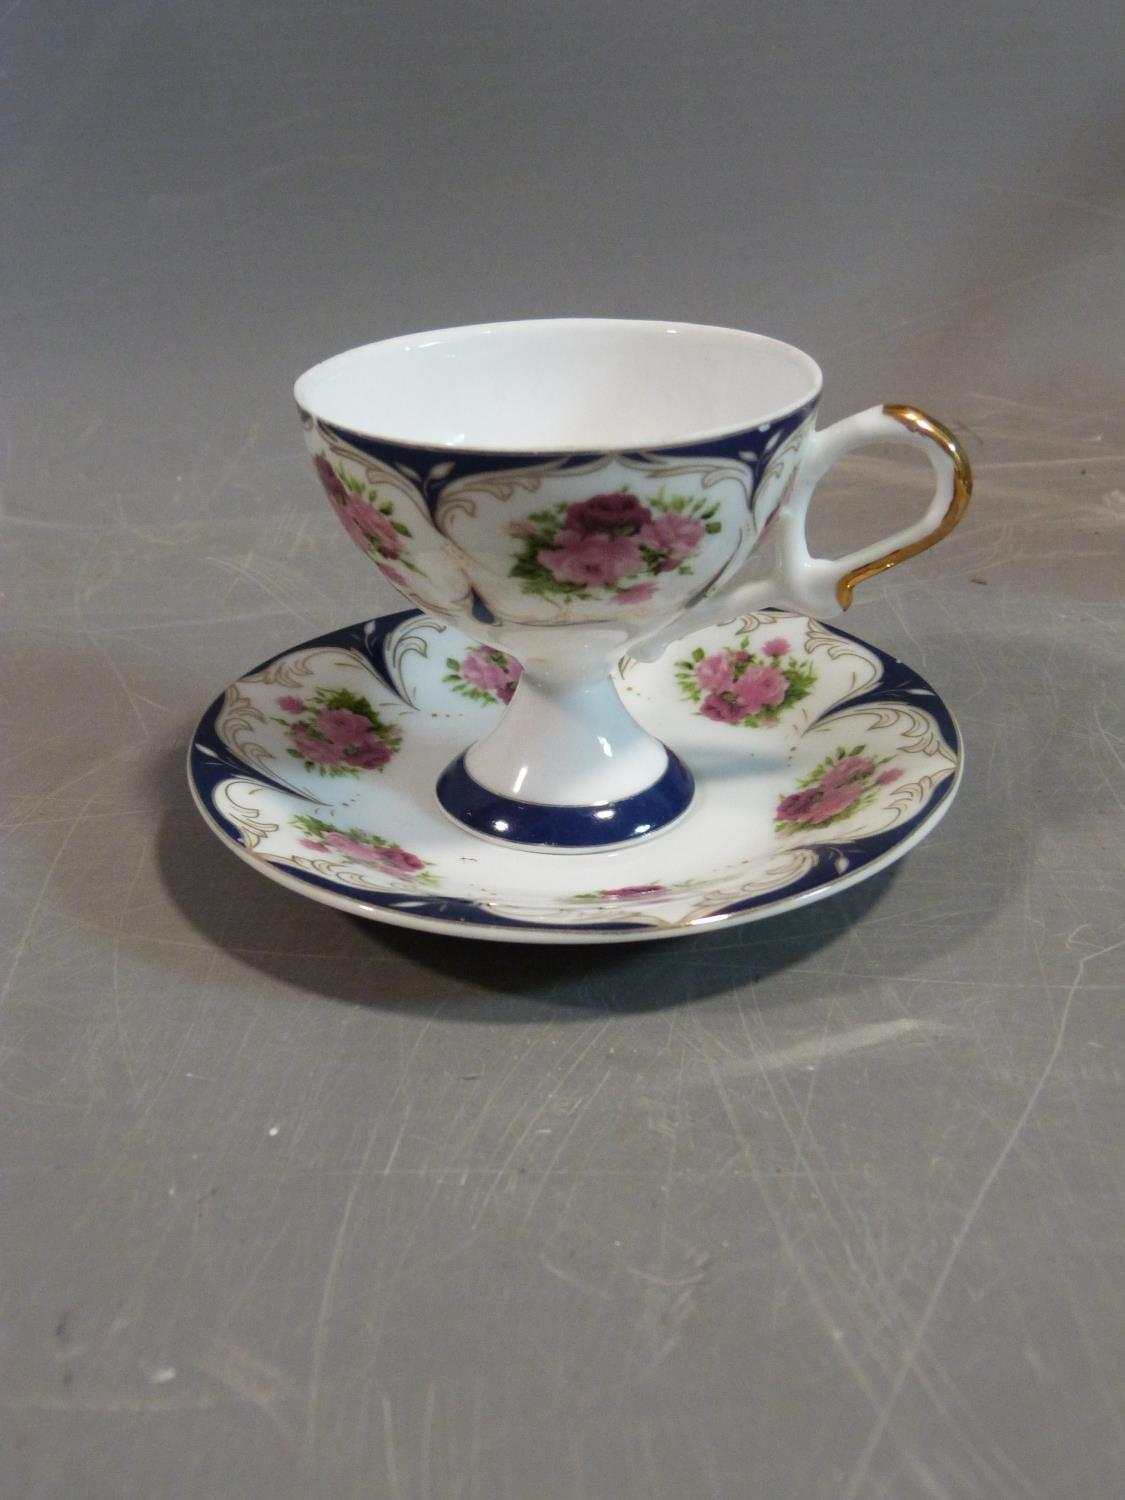 A ceramic Malaysian tea set and a pair of porcelain tea cups and saucers. The tea cups have a - Image 13 of 15